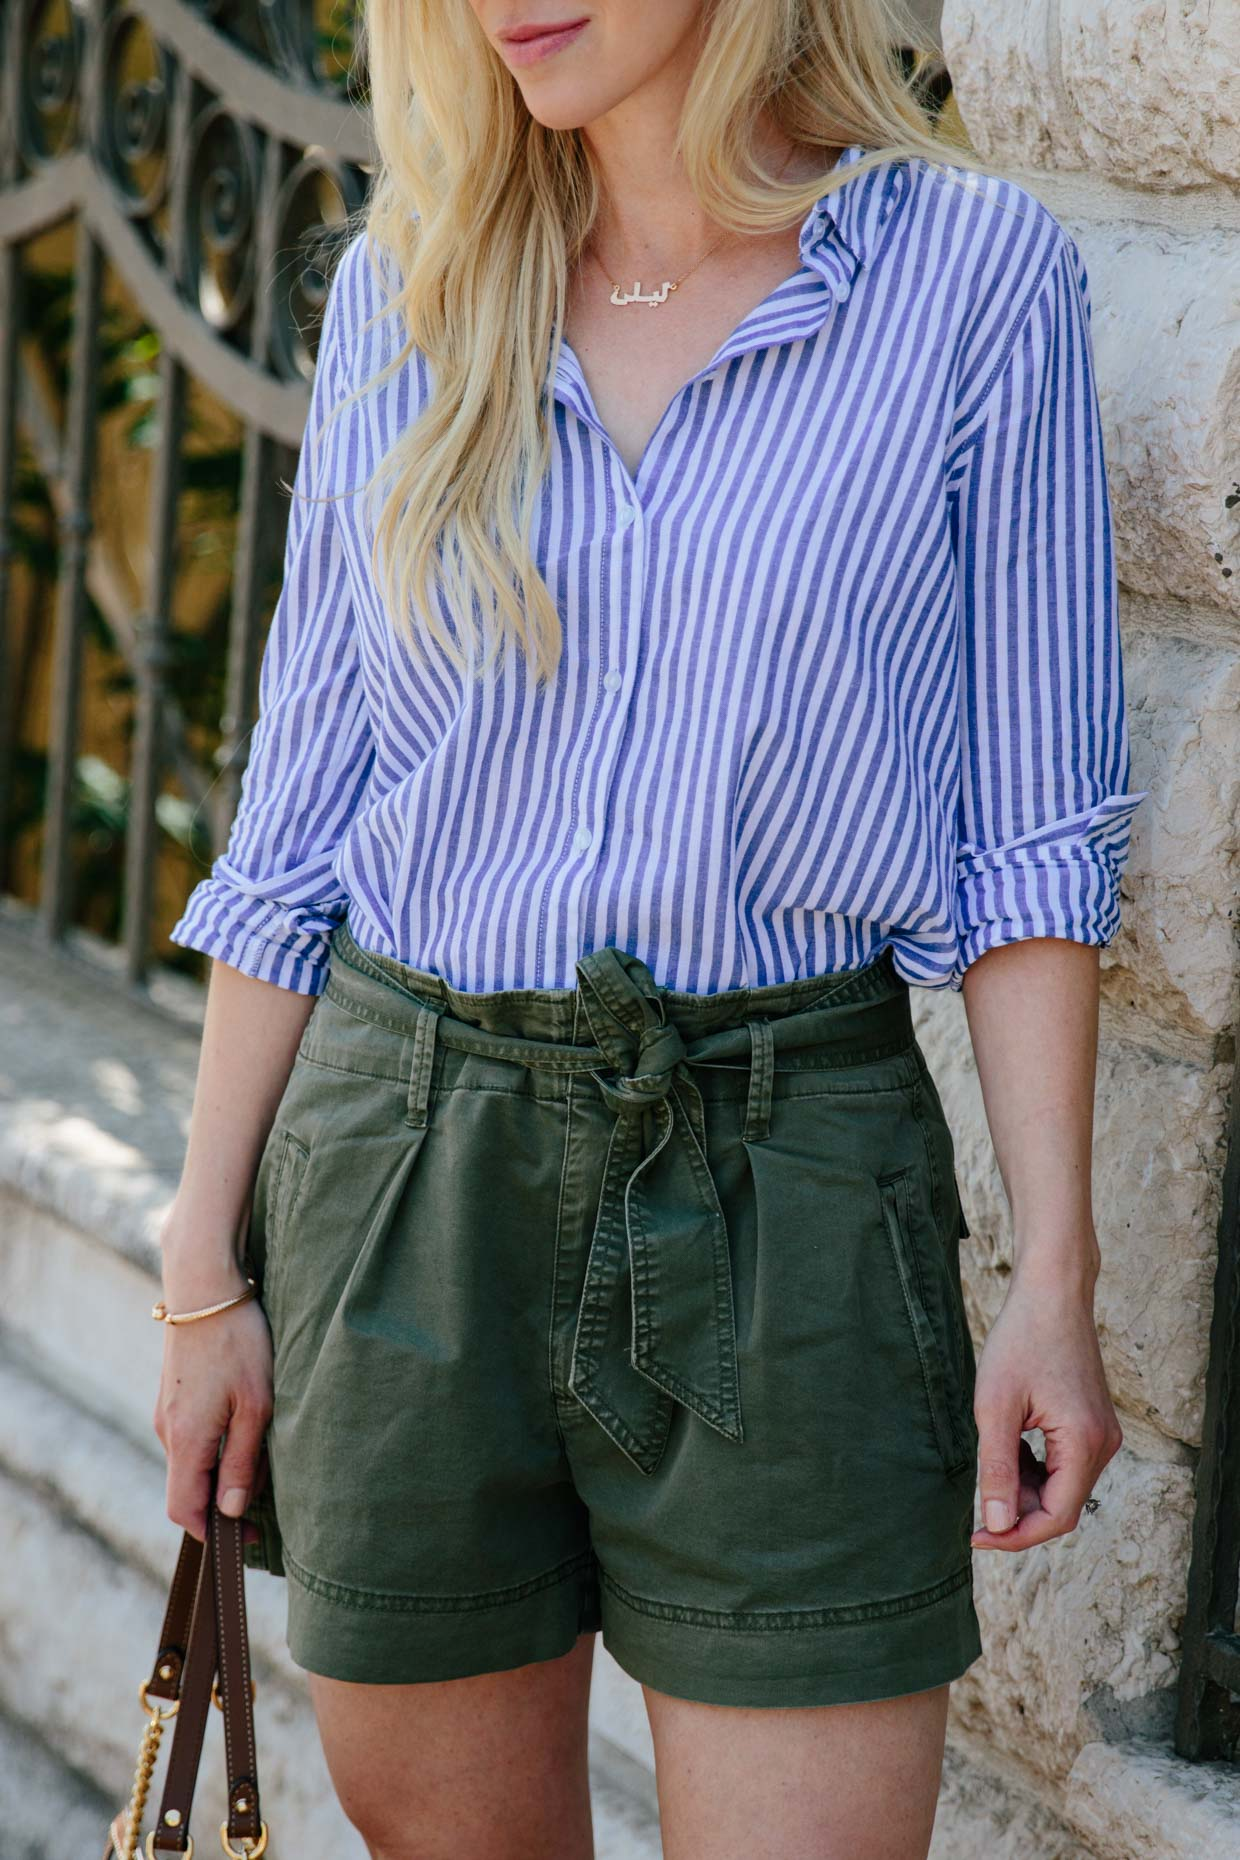 740744eeb Casual summer outfit idea with blue striped button down shirt and olive tie  waist shorts, how to wear stripes and olive together